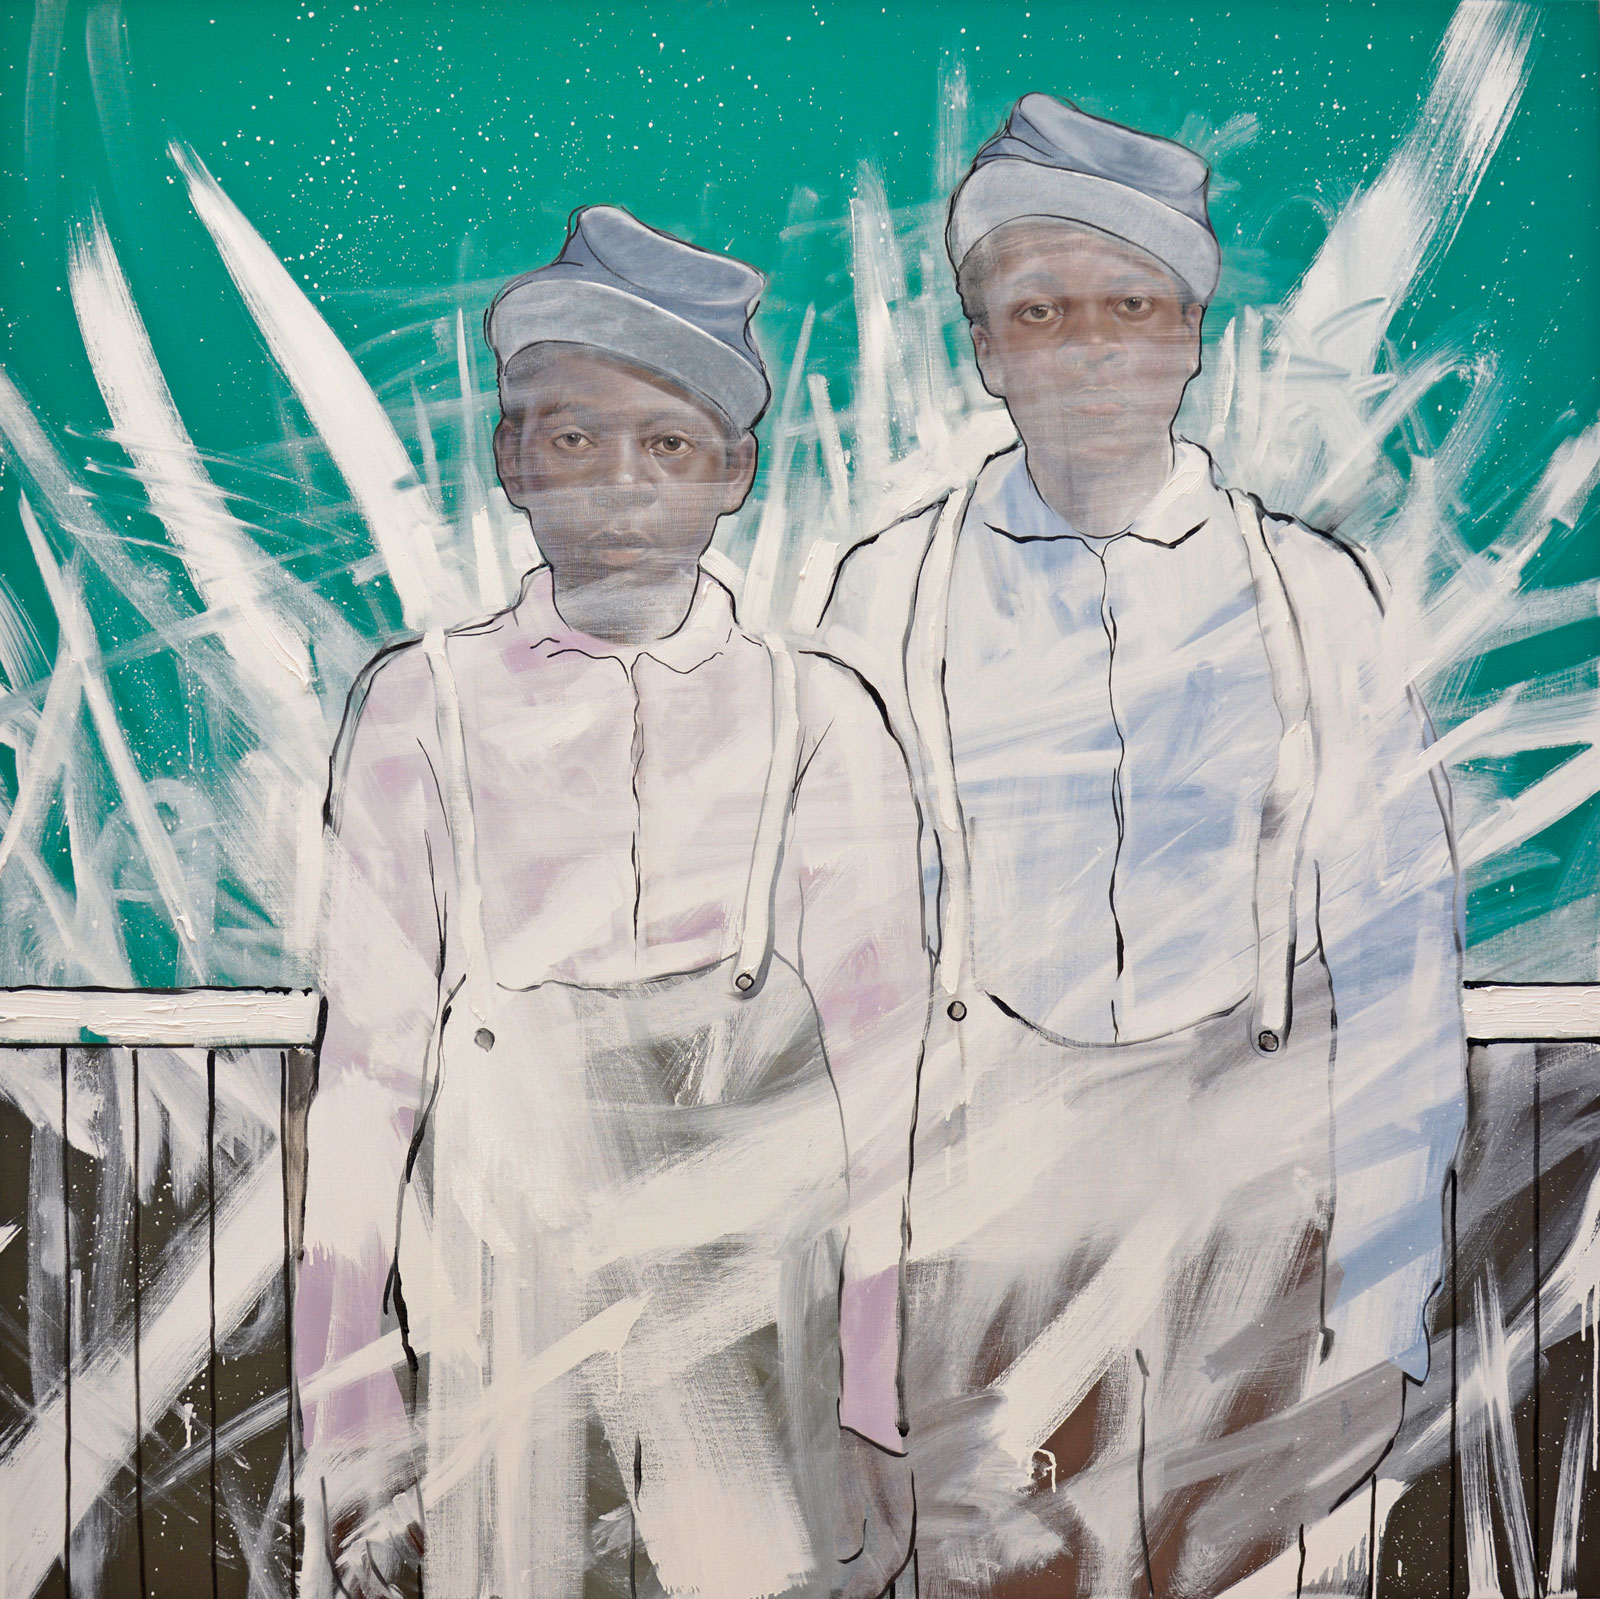 <i>Boys in Winter</i> (2013), 64˝ × 64˝ × 1 1/2˝, oil on canvas